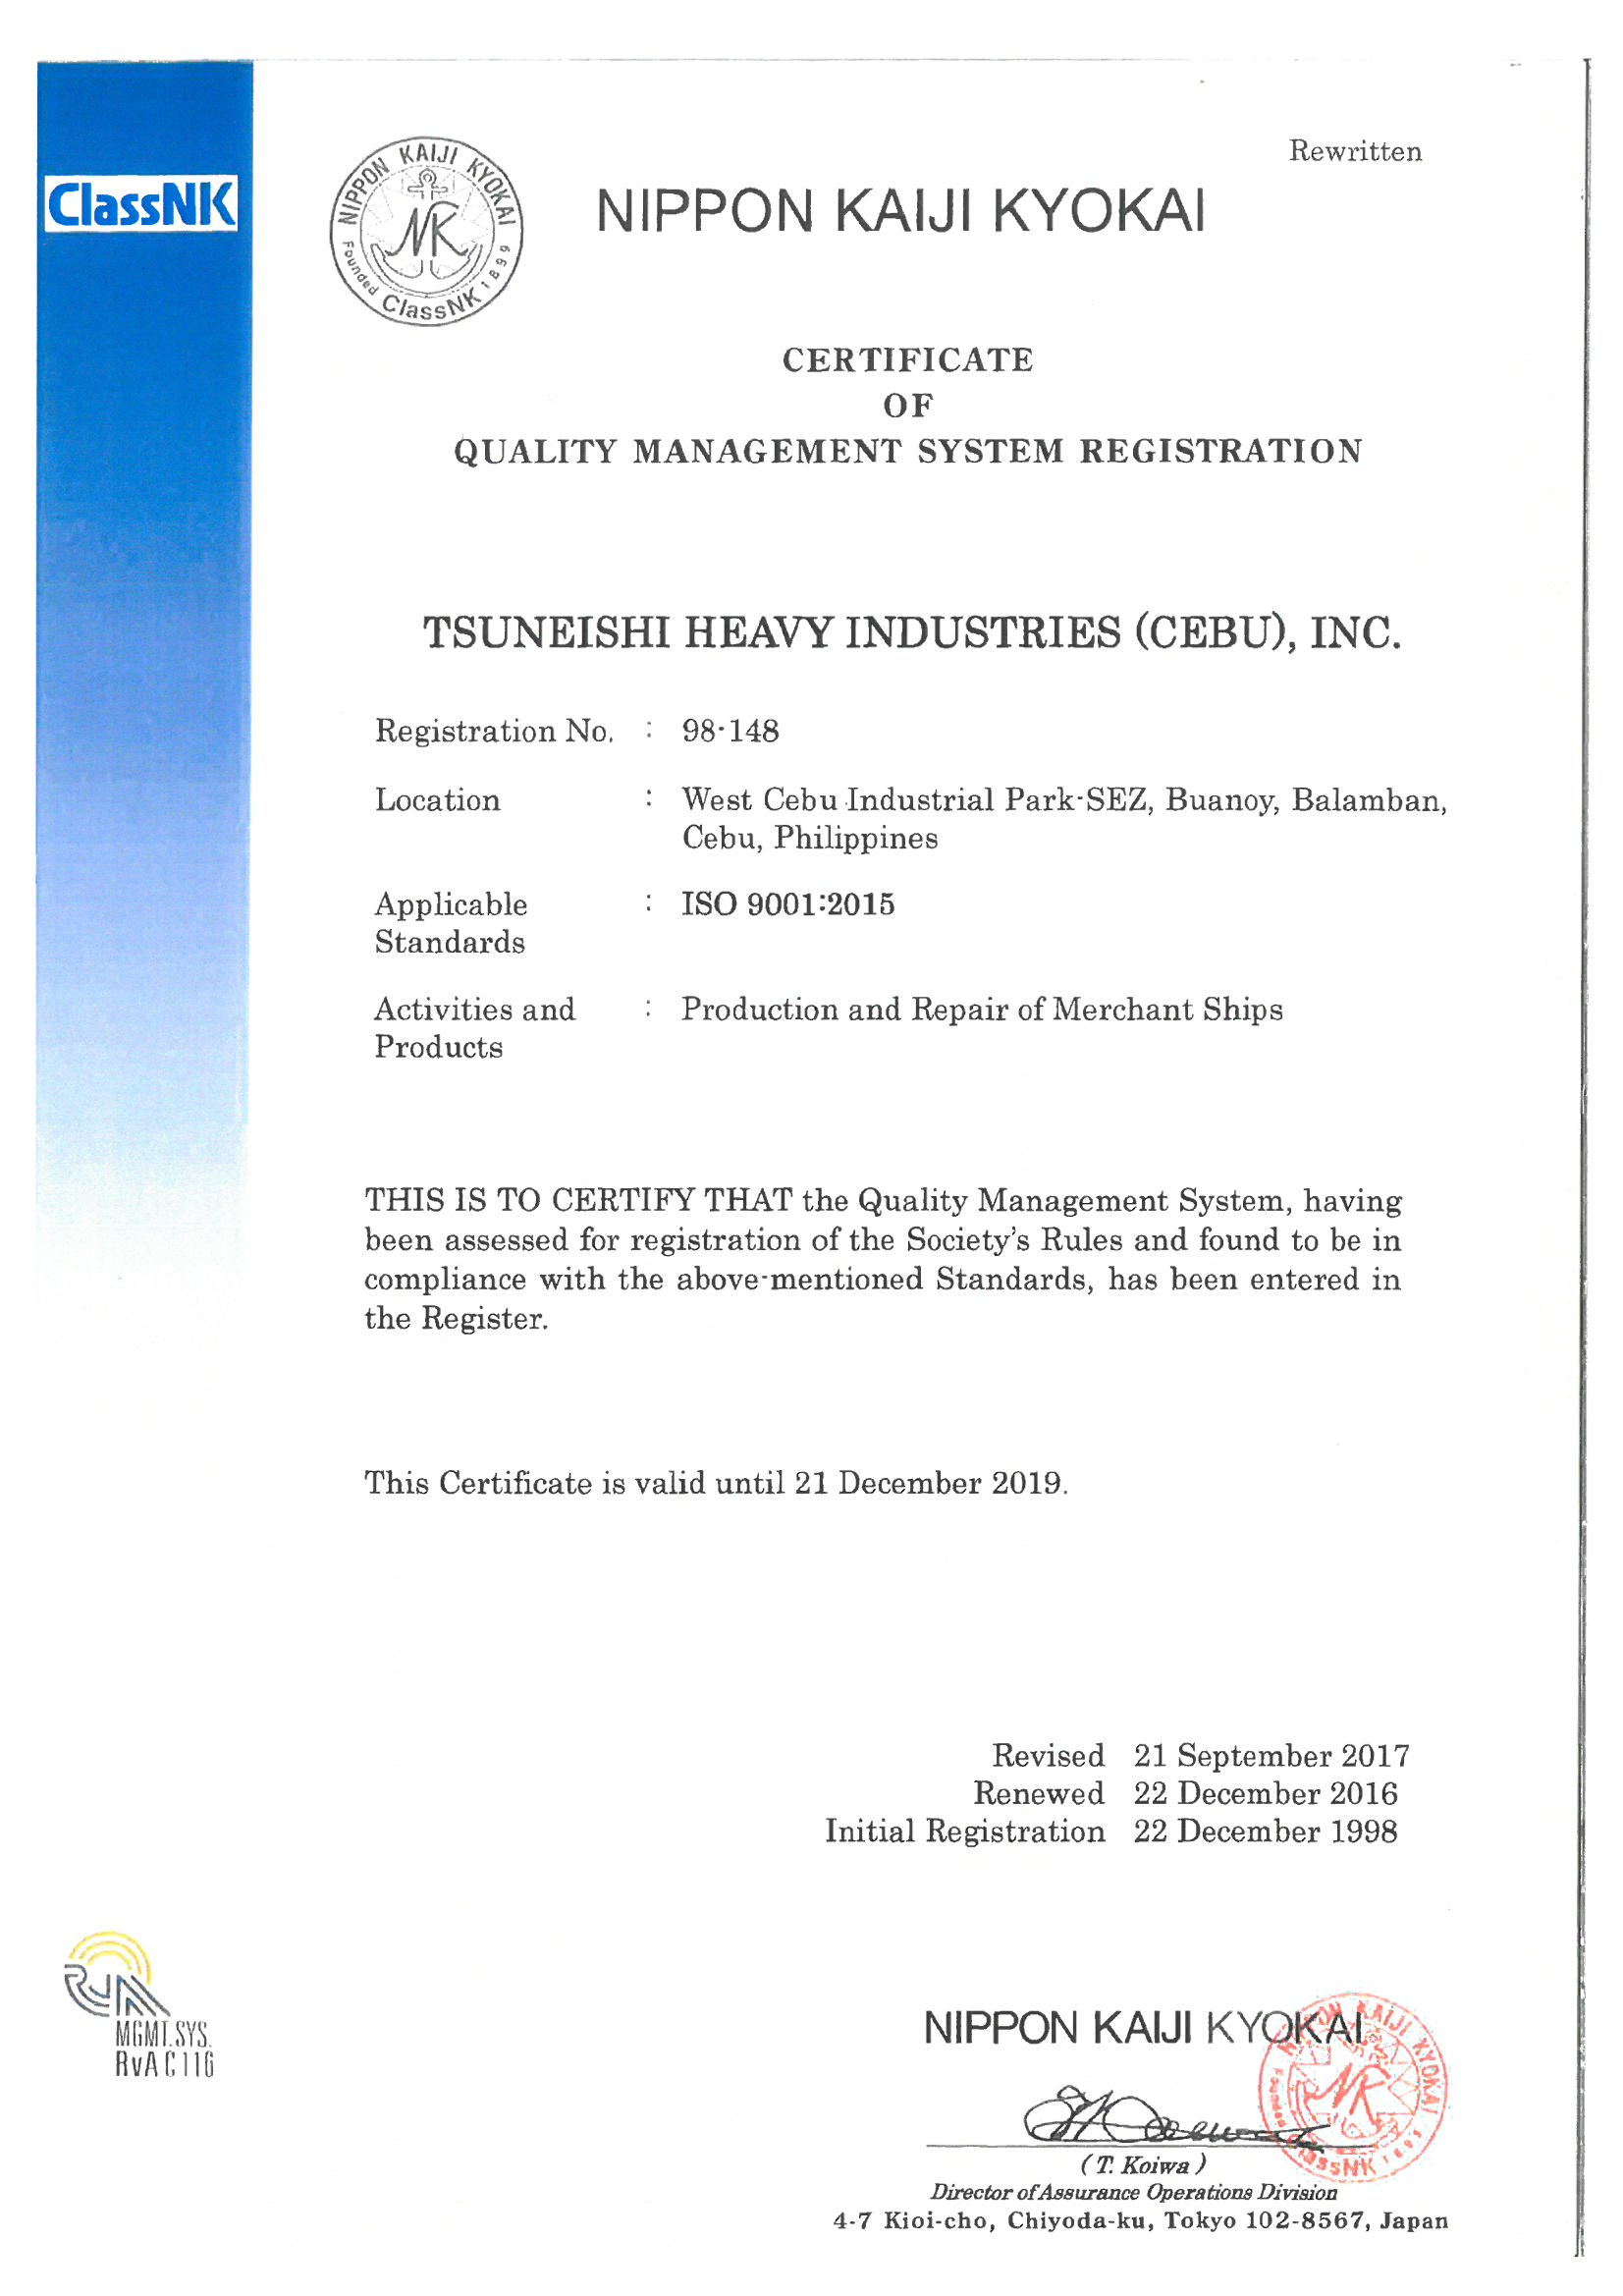 TSUNEISHI HEAVY INDUSTRIES (CEBU), Inc. Acquires ISO 9001 / 14001: 2015 Certification